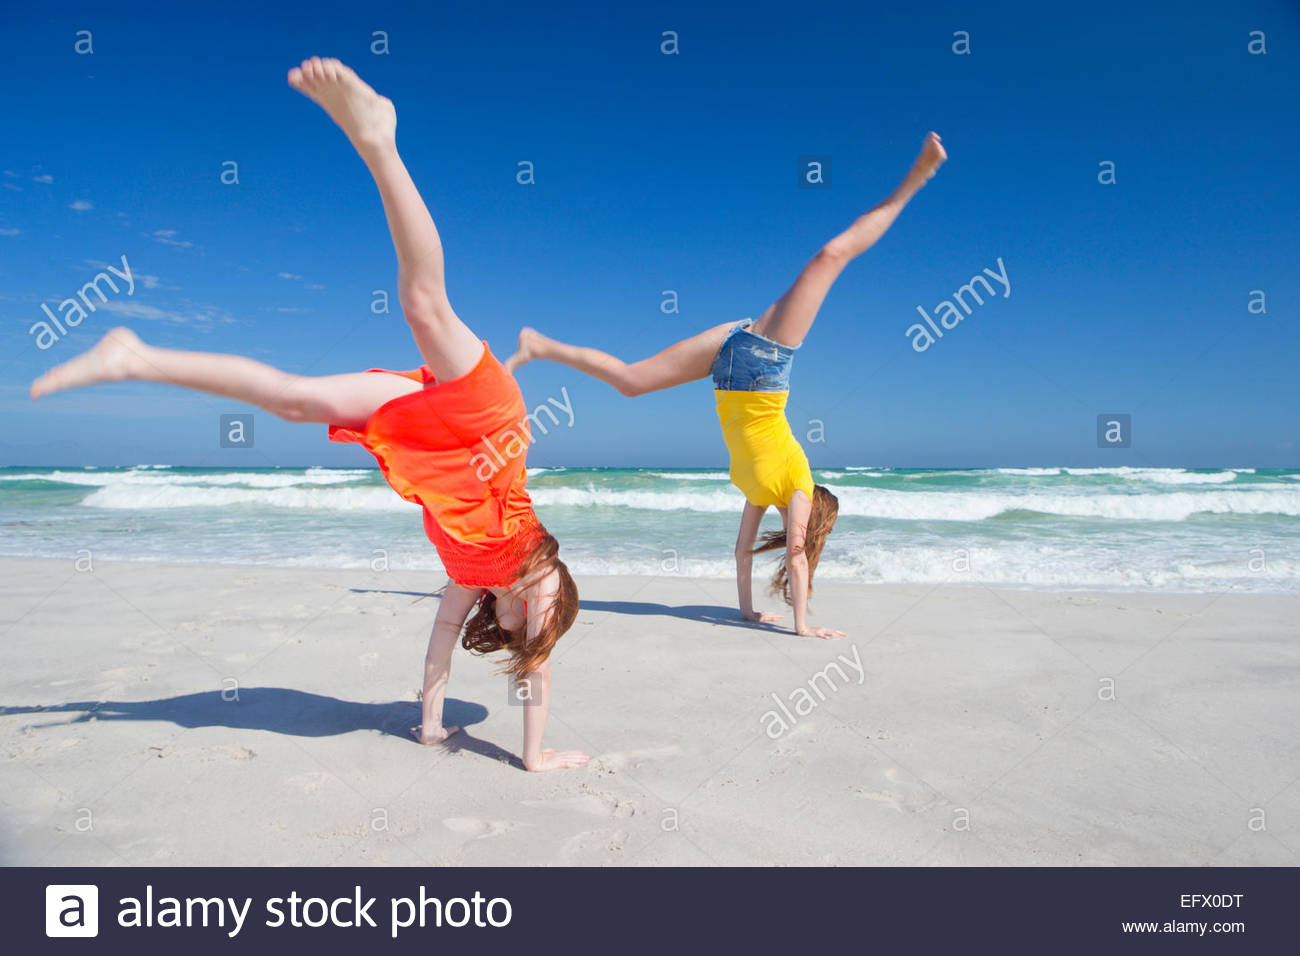 Mother and daughter cart wheeling on sunny beach - Stock Image